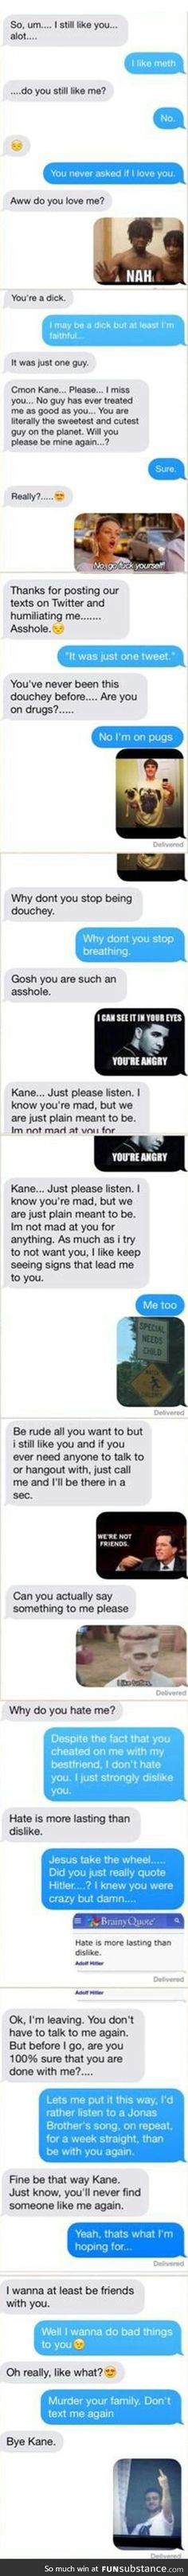 How to deal with a b*tch ex-gf.. this is so cool